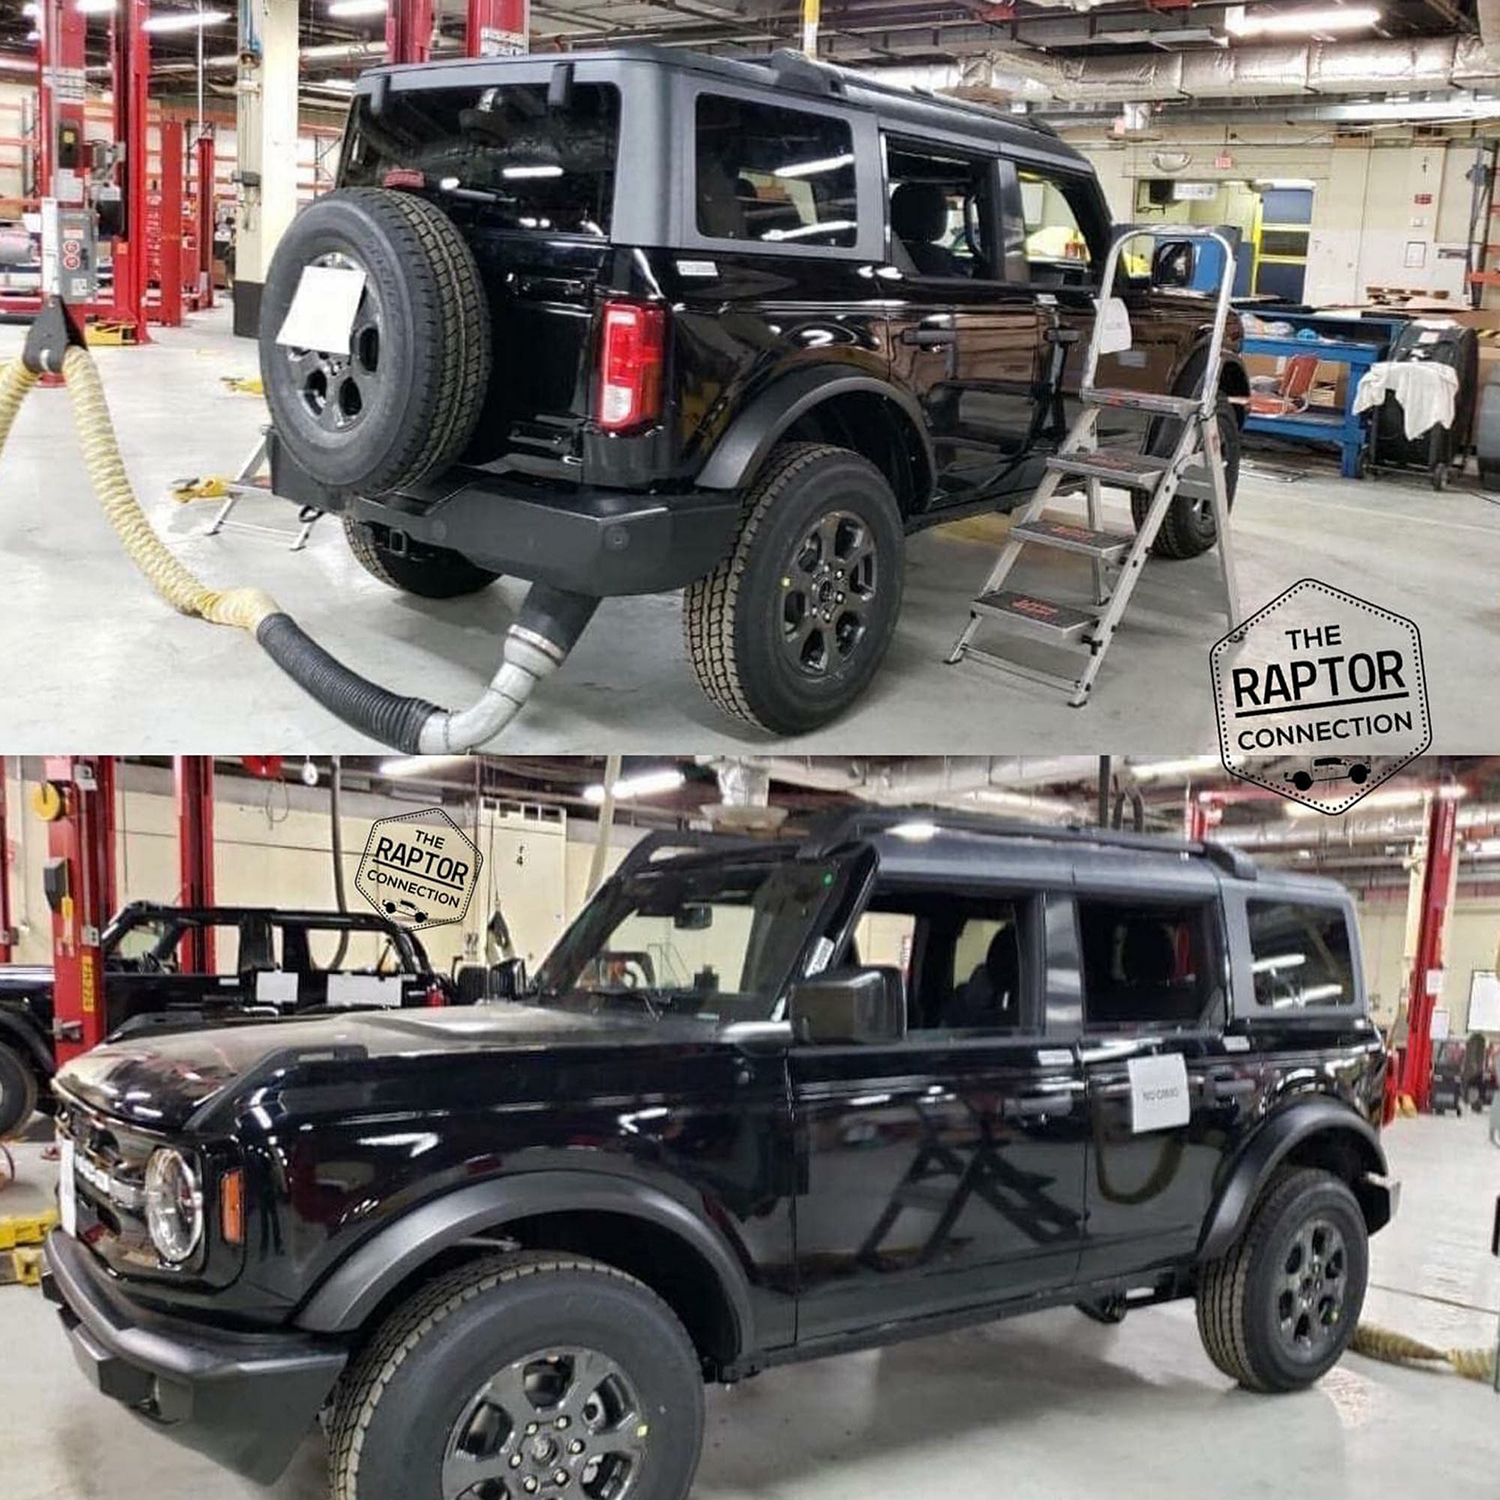 Black SUV front and back in the garage